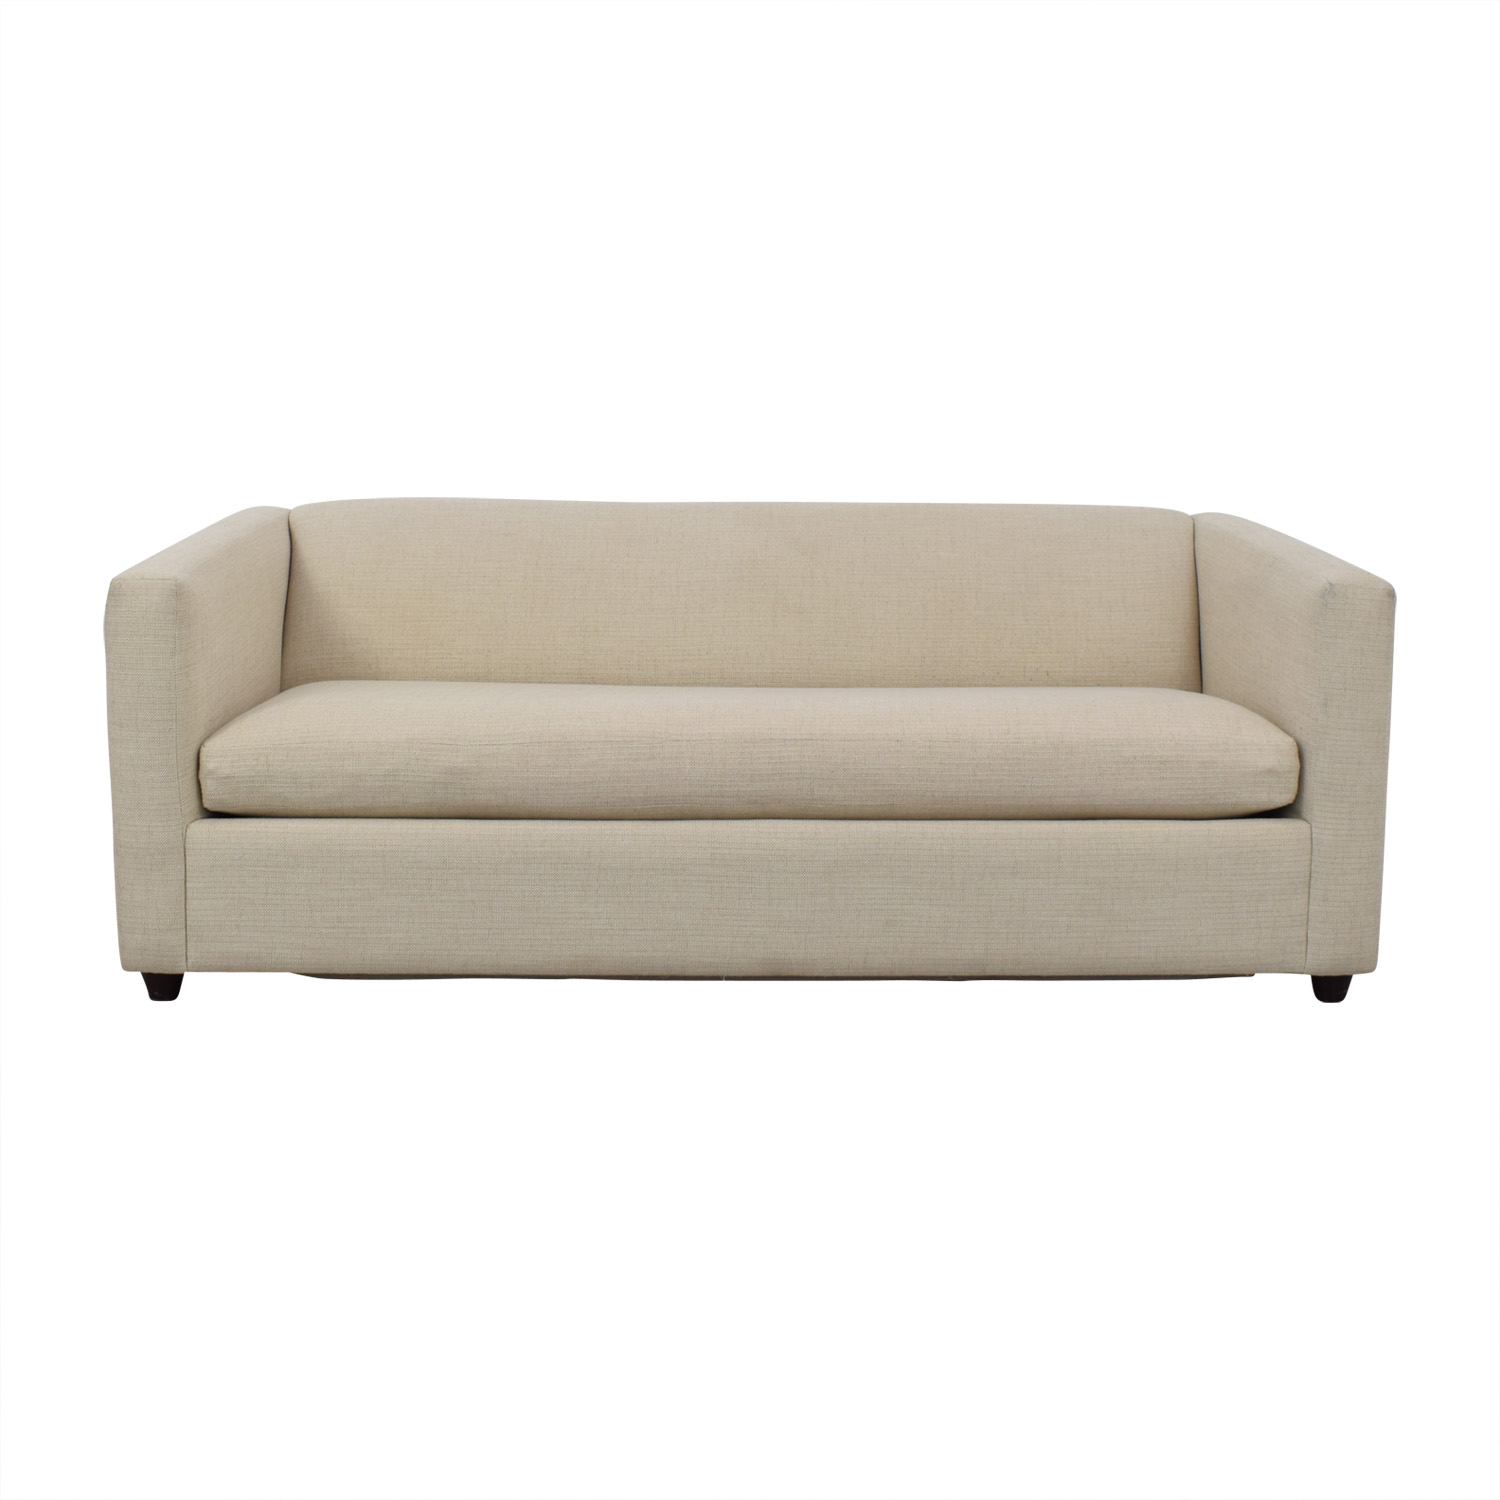 buy CB2 CB2 Movie Salt and Pepper Queen Sleeper Sofa online